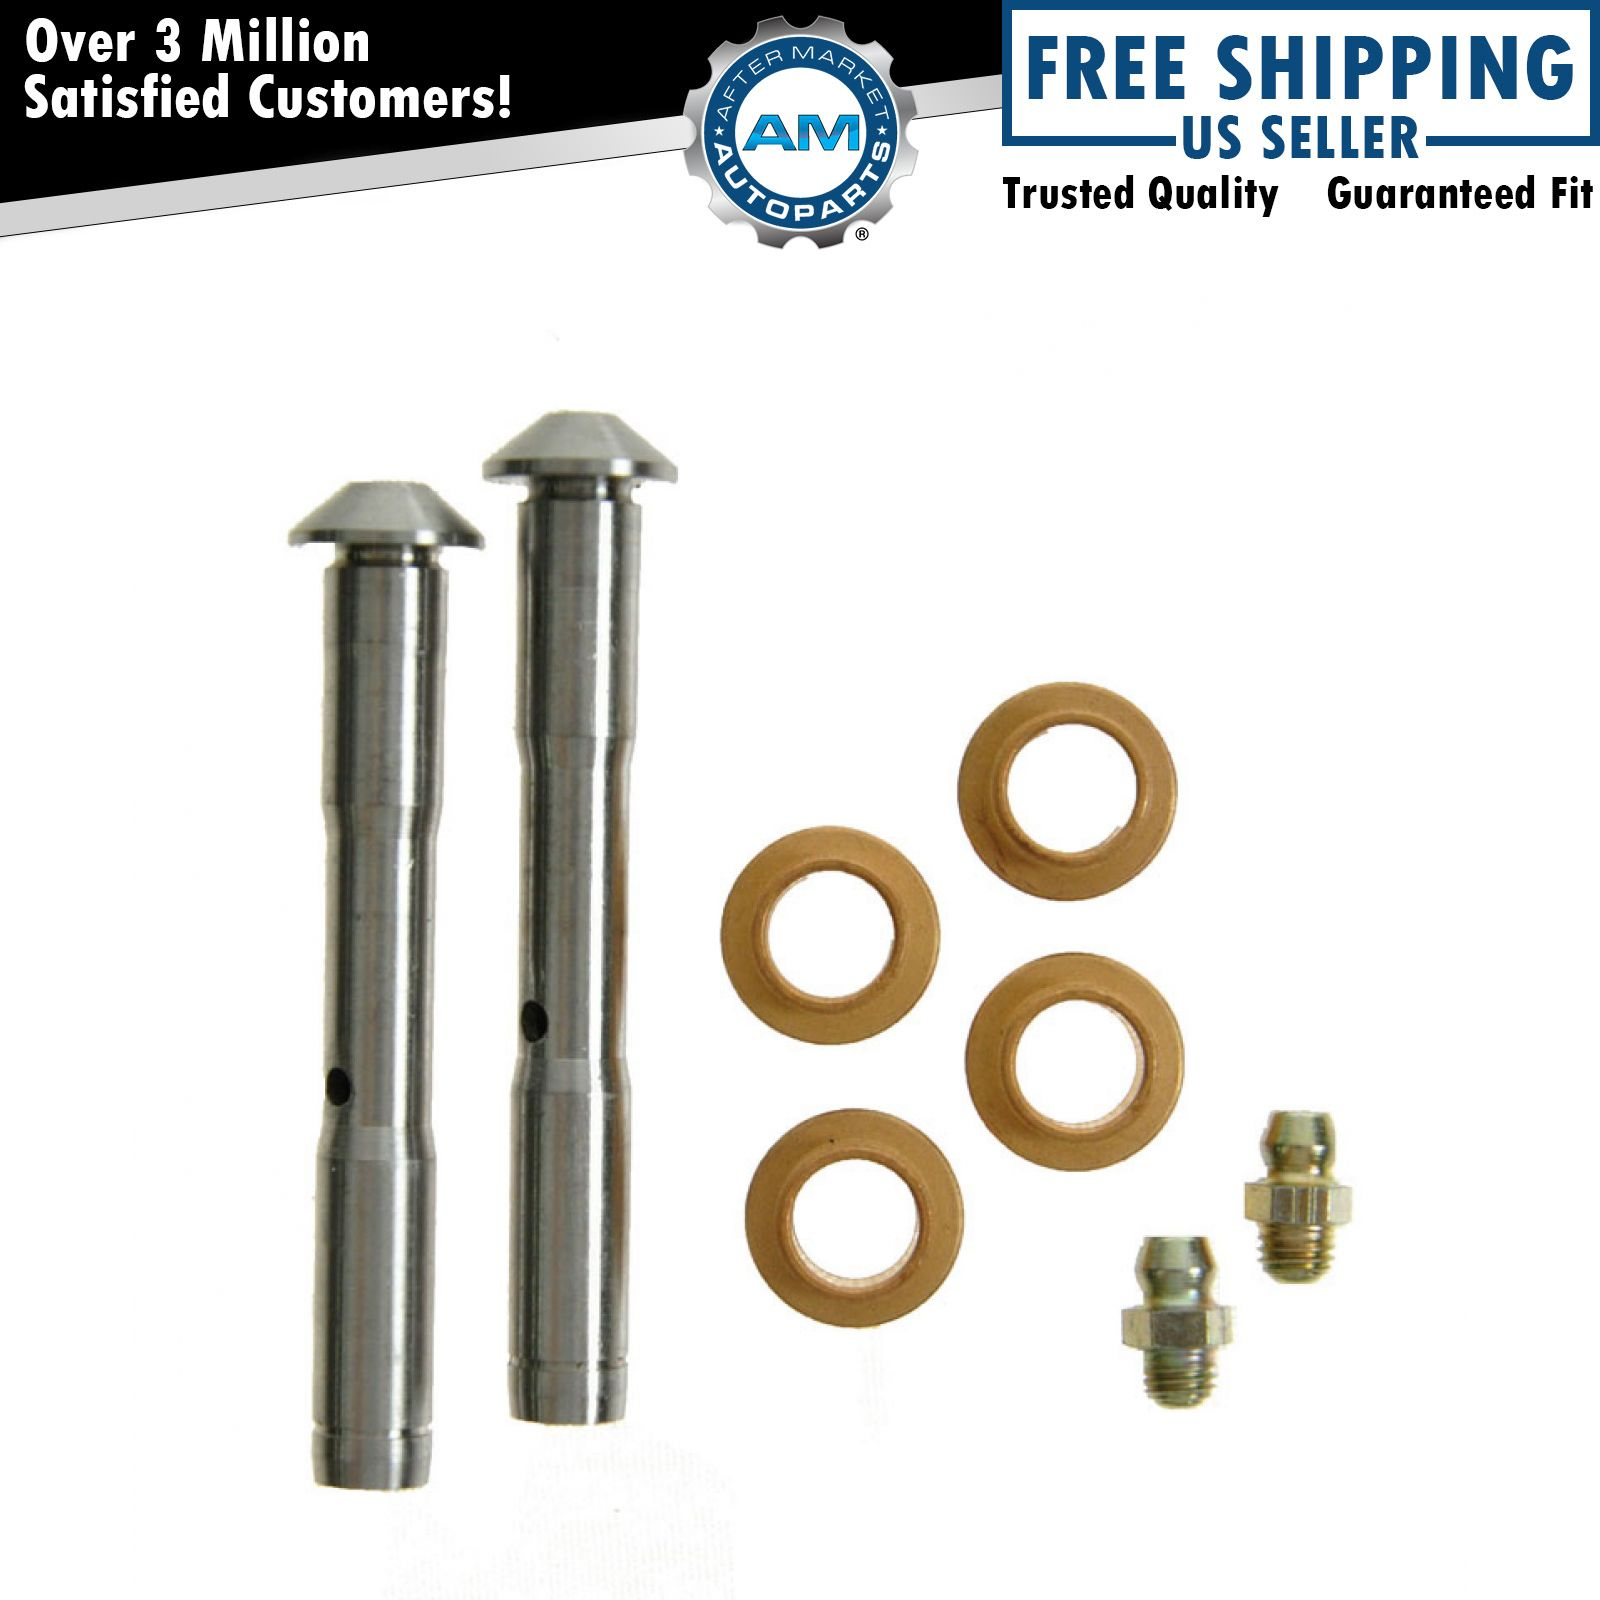 Dorman Side Cargo Door Hinge Pin Amp Bushing Repair Kit For